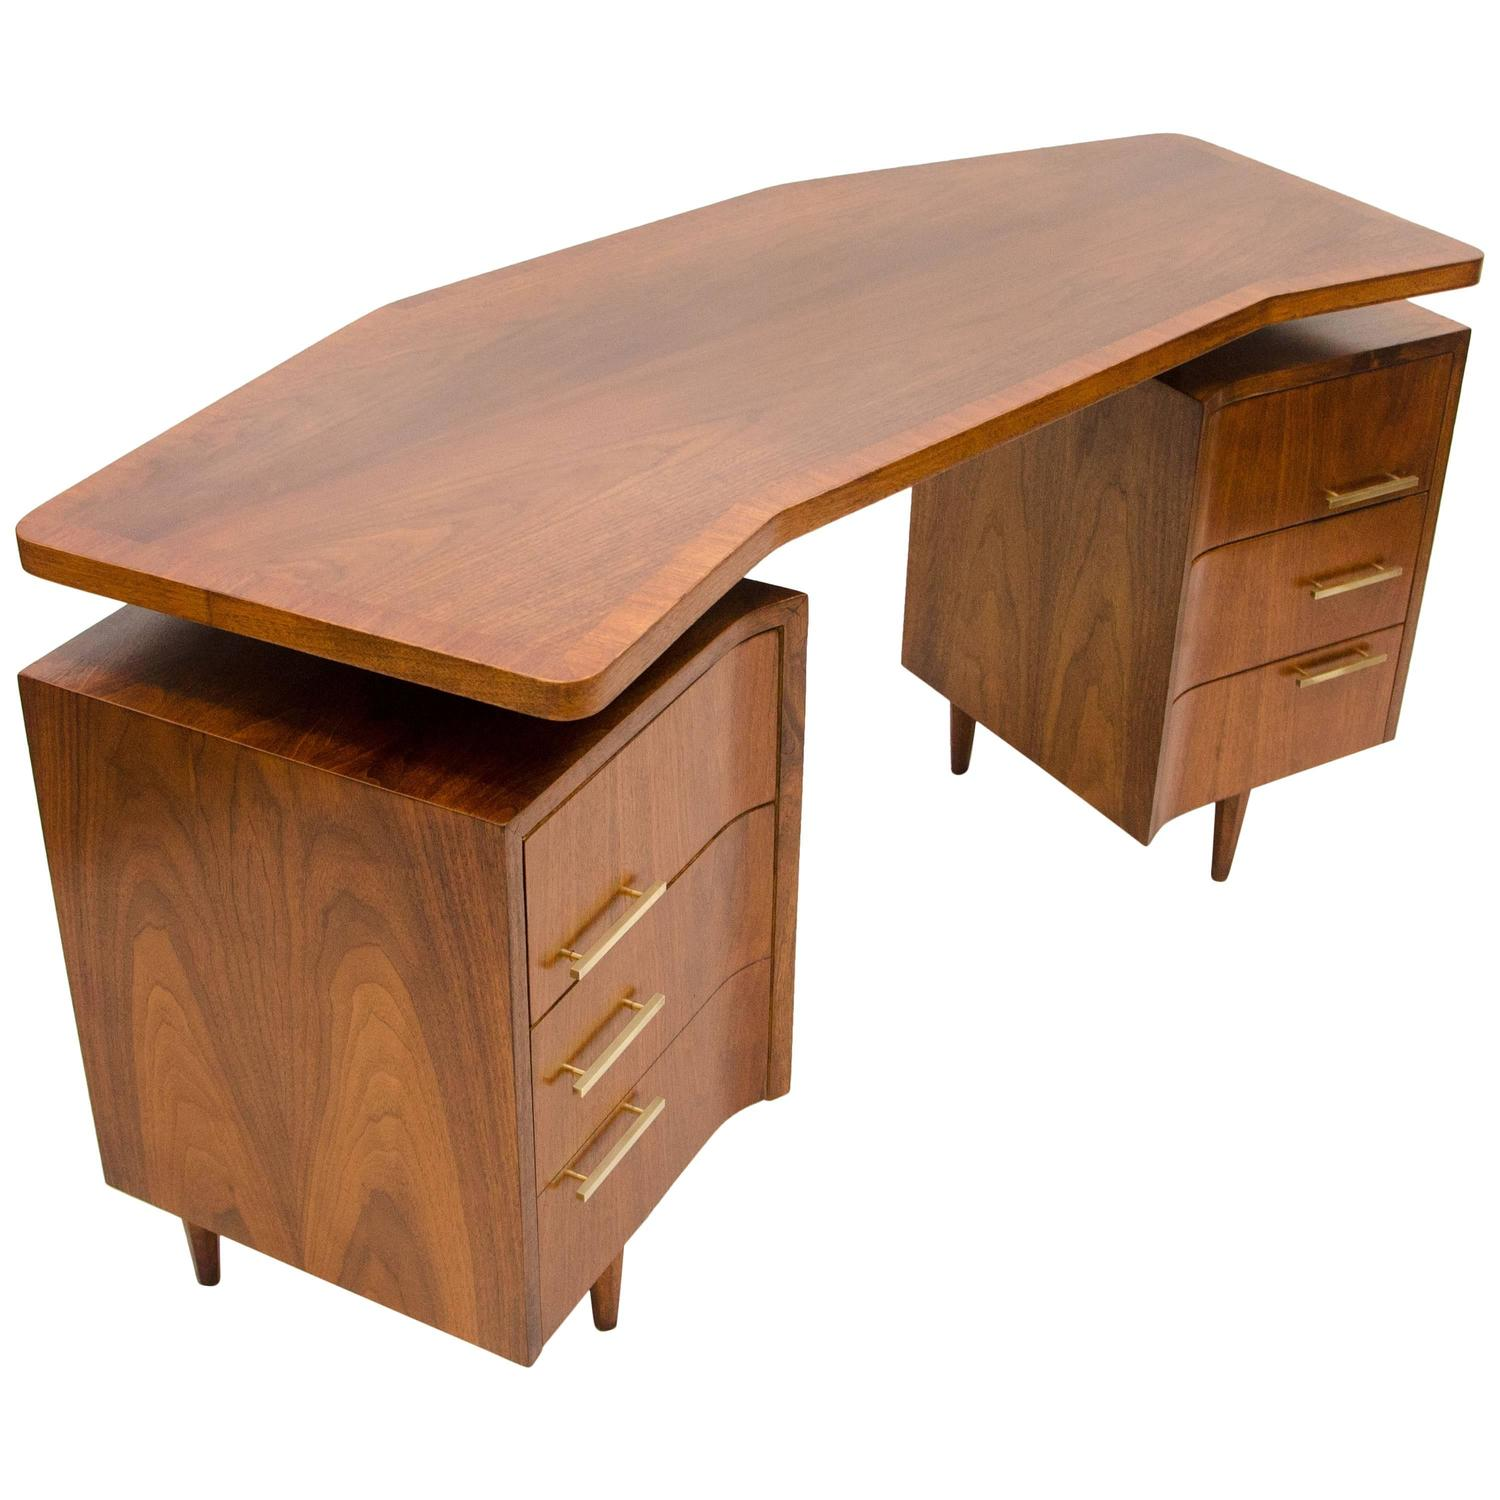 Midcentury Walnut Curved Desk Floating Top At 1stdibs